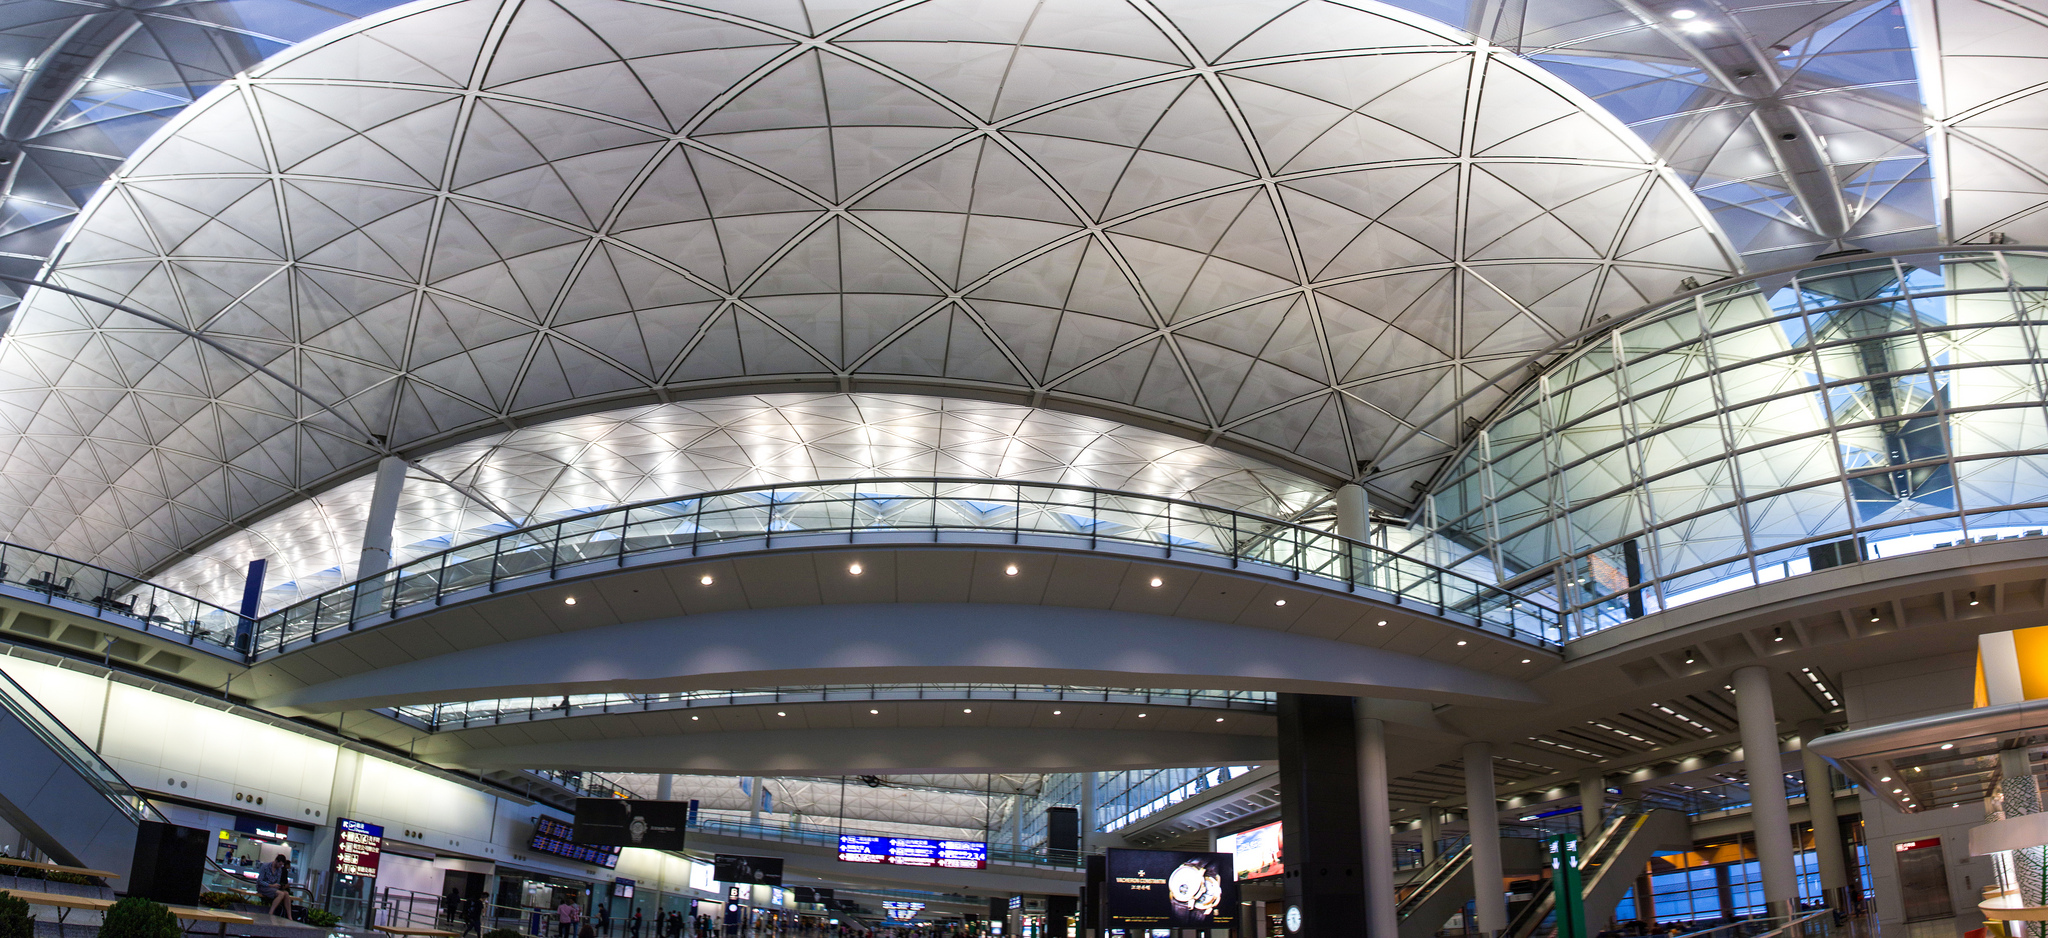 hong kong international airport Which airport is hkg hkg is officially named hong kong intl, and is located in the city of hong kong over 99 airline carriers fly approximately 254 flights per week.